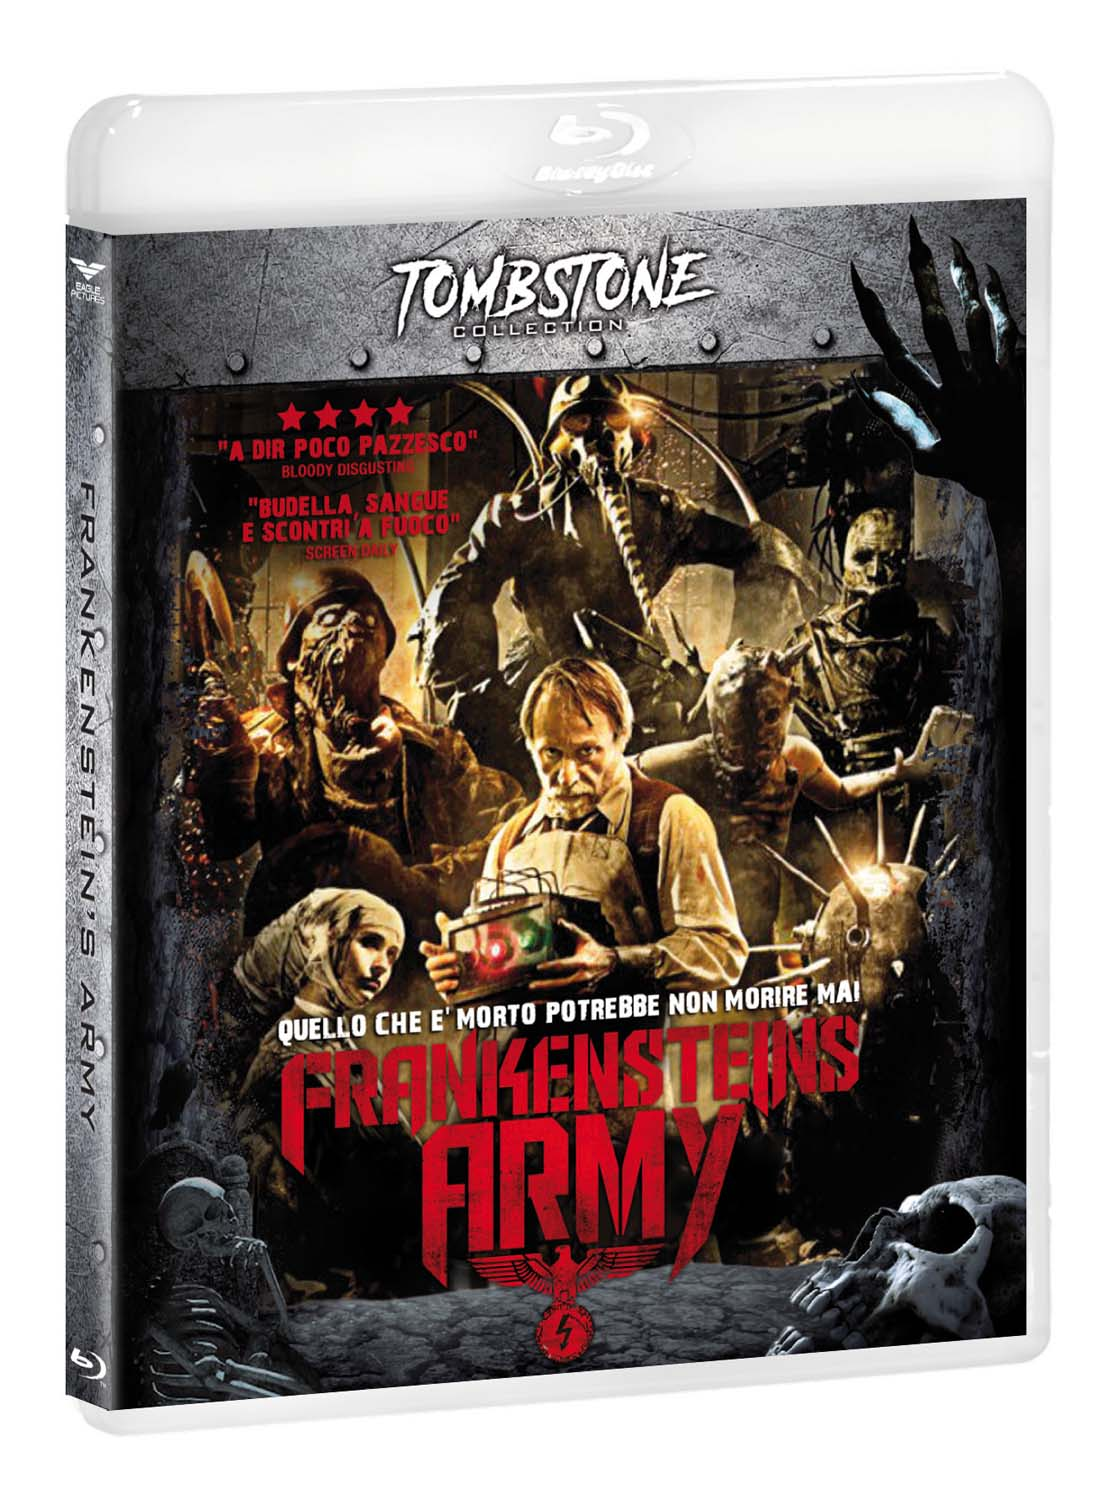 FRANKENSTEIN'S ARMY (TOMBSTONE)